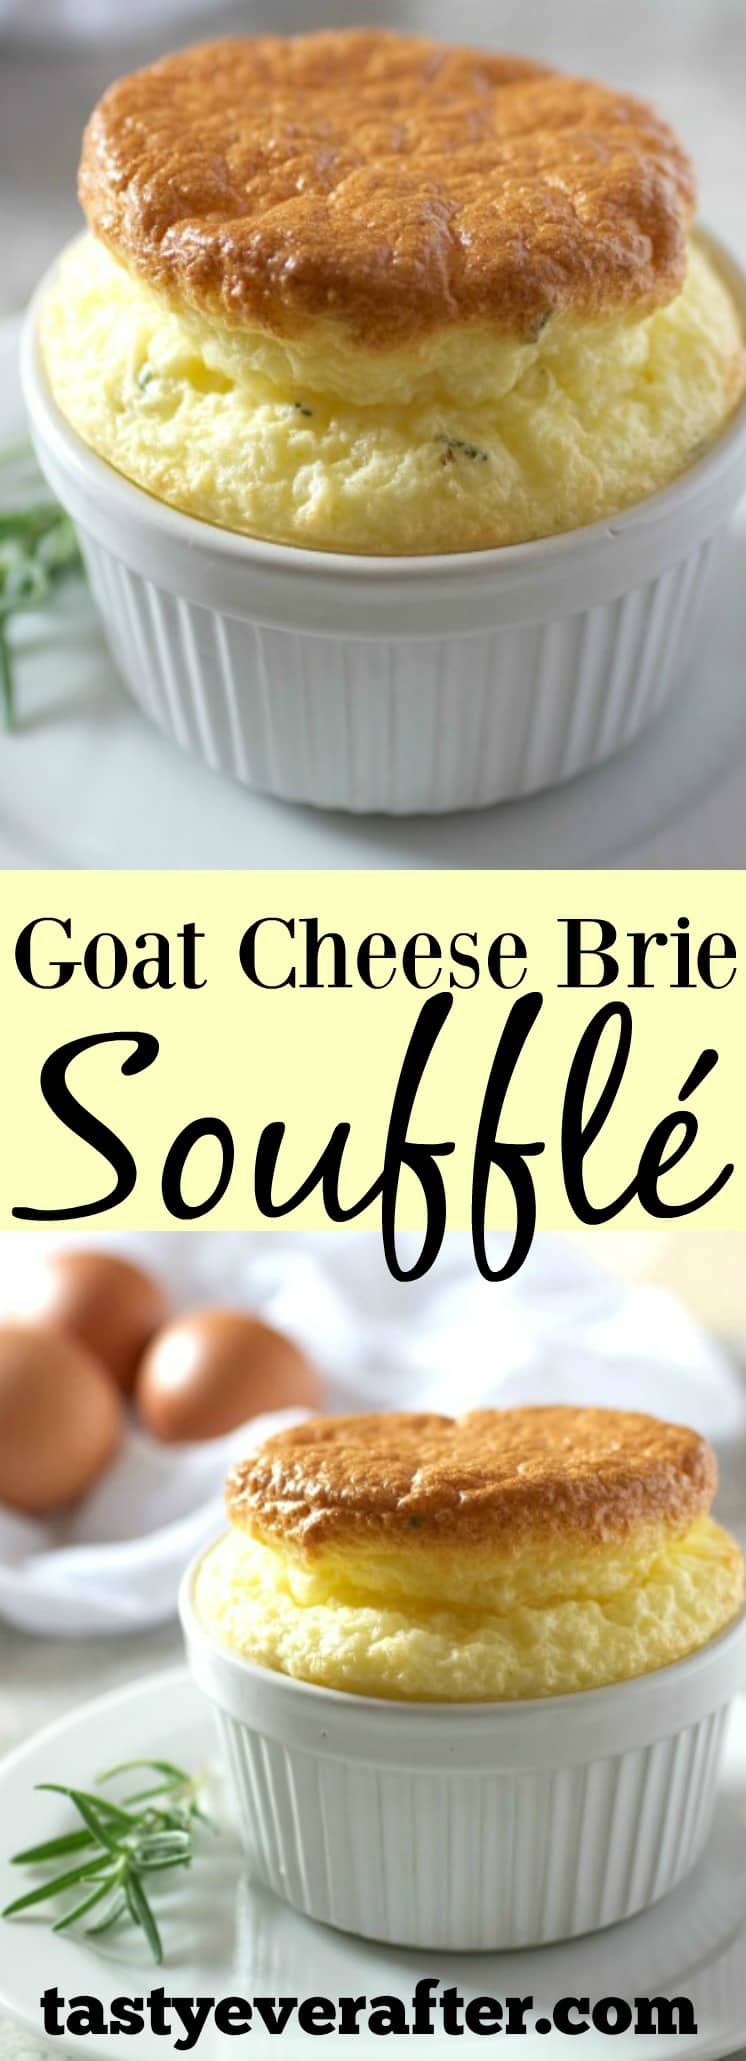 Goat Cheese Brie Souffle